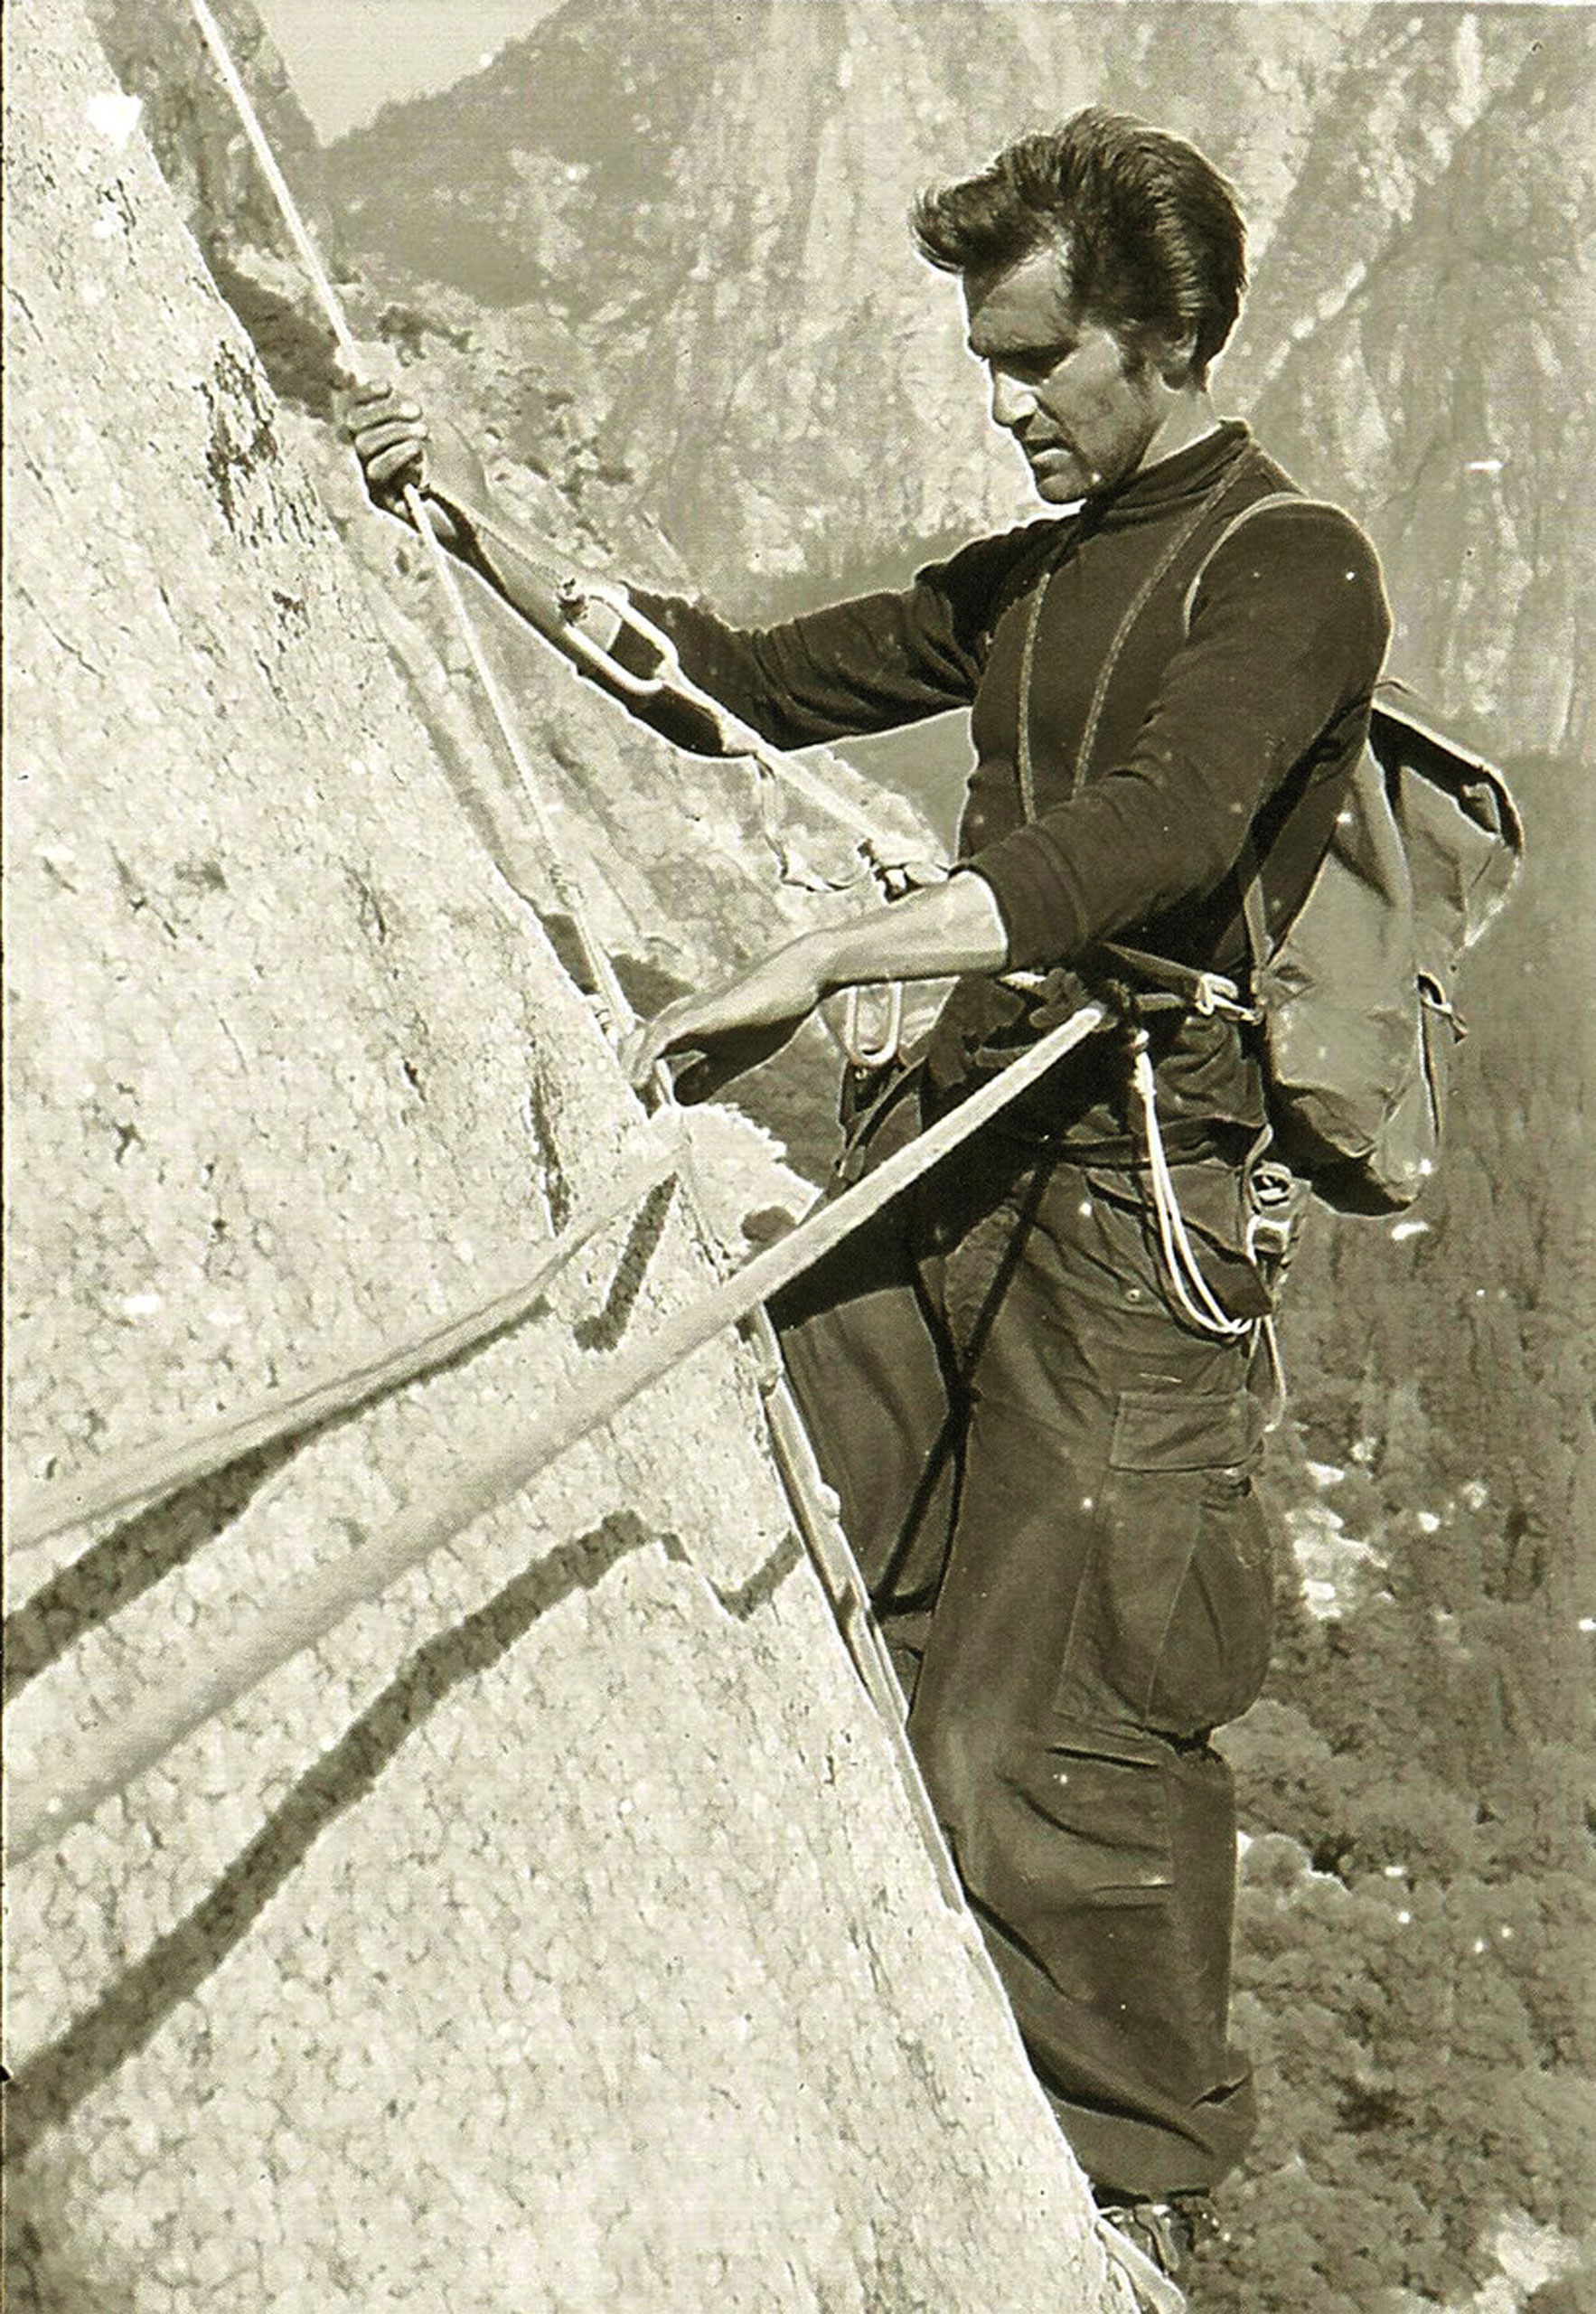 "1958: Warren Harding climbs the Nose                                                              El Capitan soars 3,000 vertical feet above the Yosemite Valley. The climbing community once considered the granite pillar insurmountable. Warren Harding proved otherwise. He was the first climber to lead a team up a route known as the Nose, which today is considered one of the great classics of ""big wall"" climbing. Harding worked on the project over two climbing seasons – a collective 47 days – and finally managed to reach the top in November 1958."